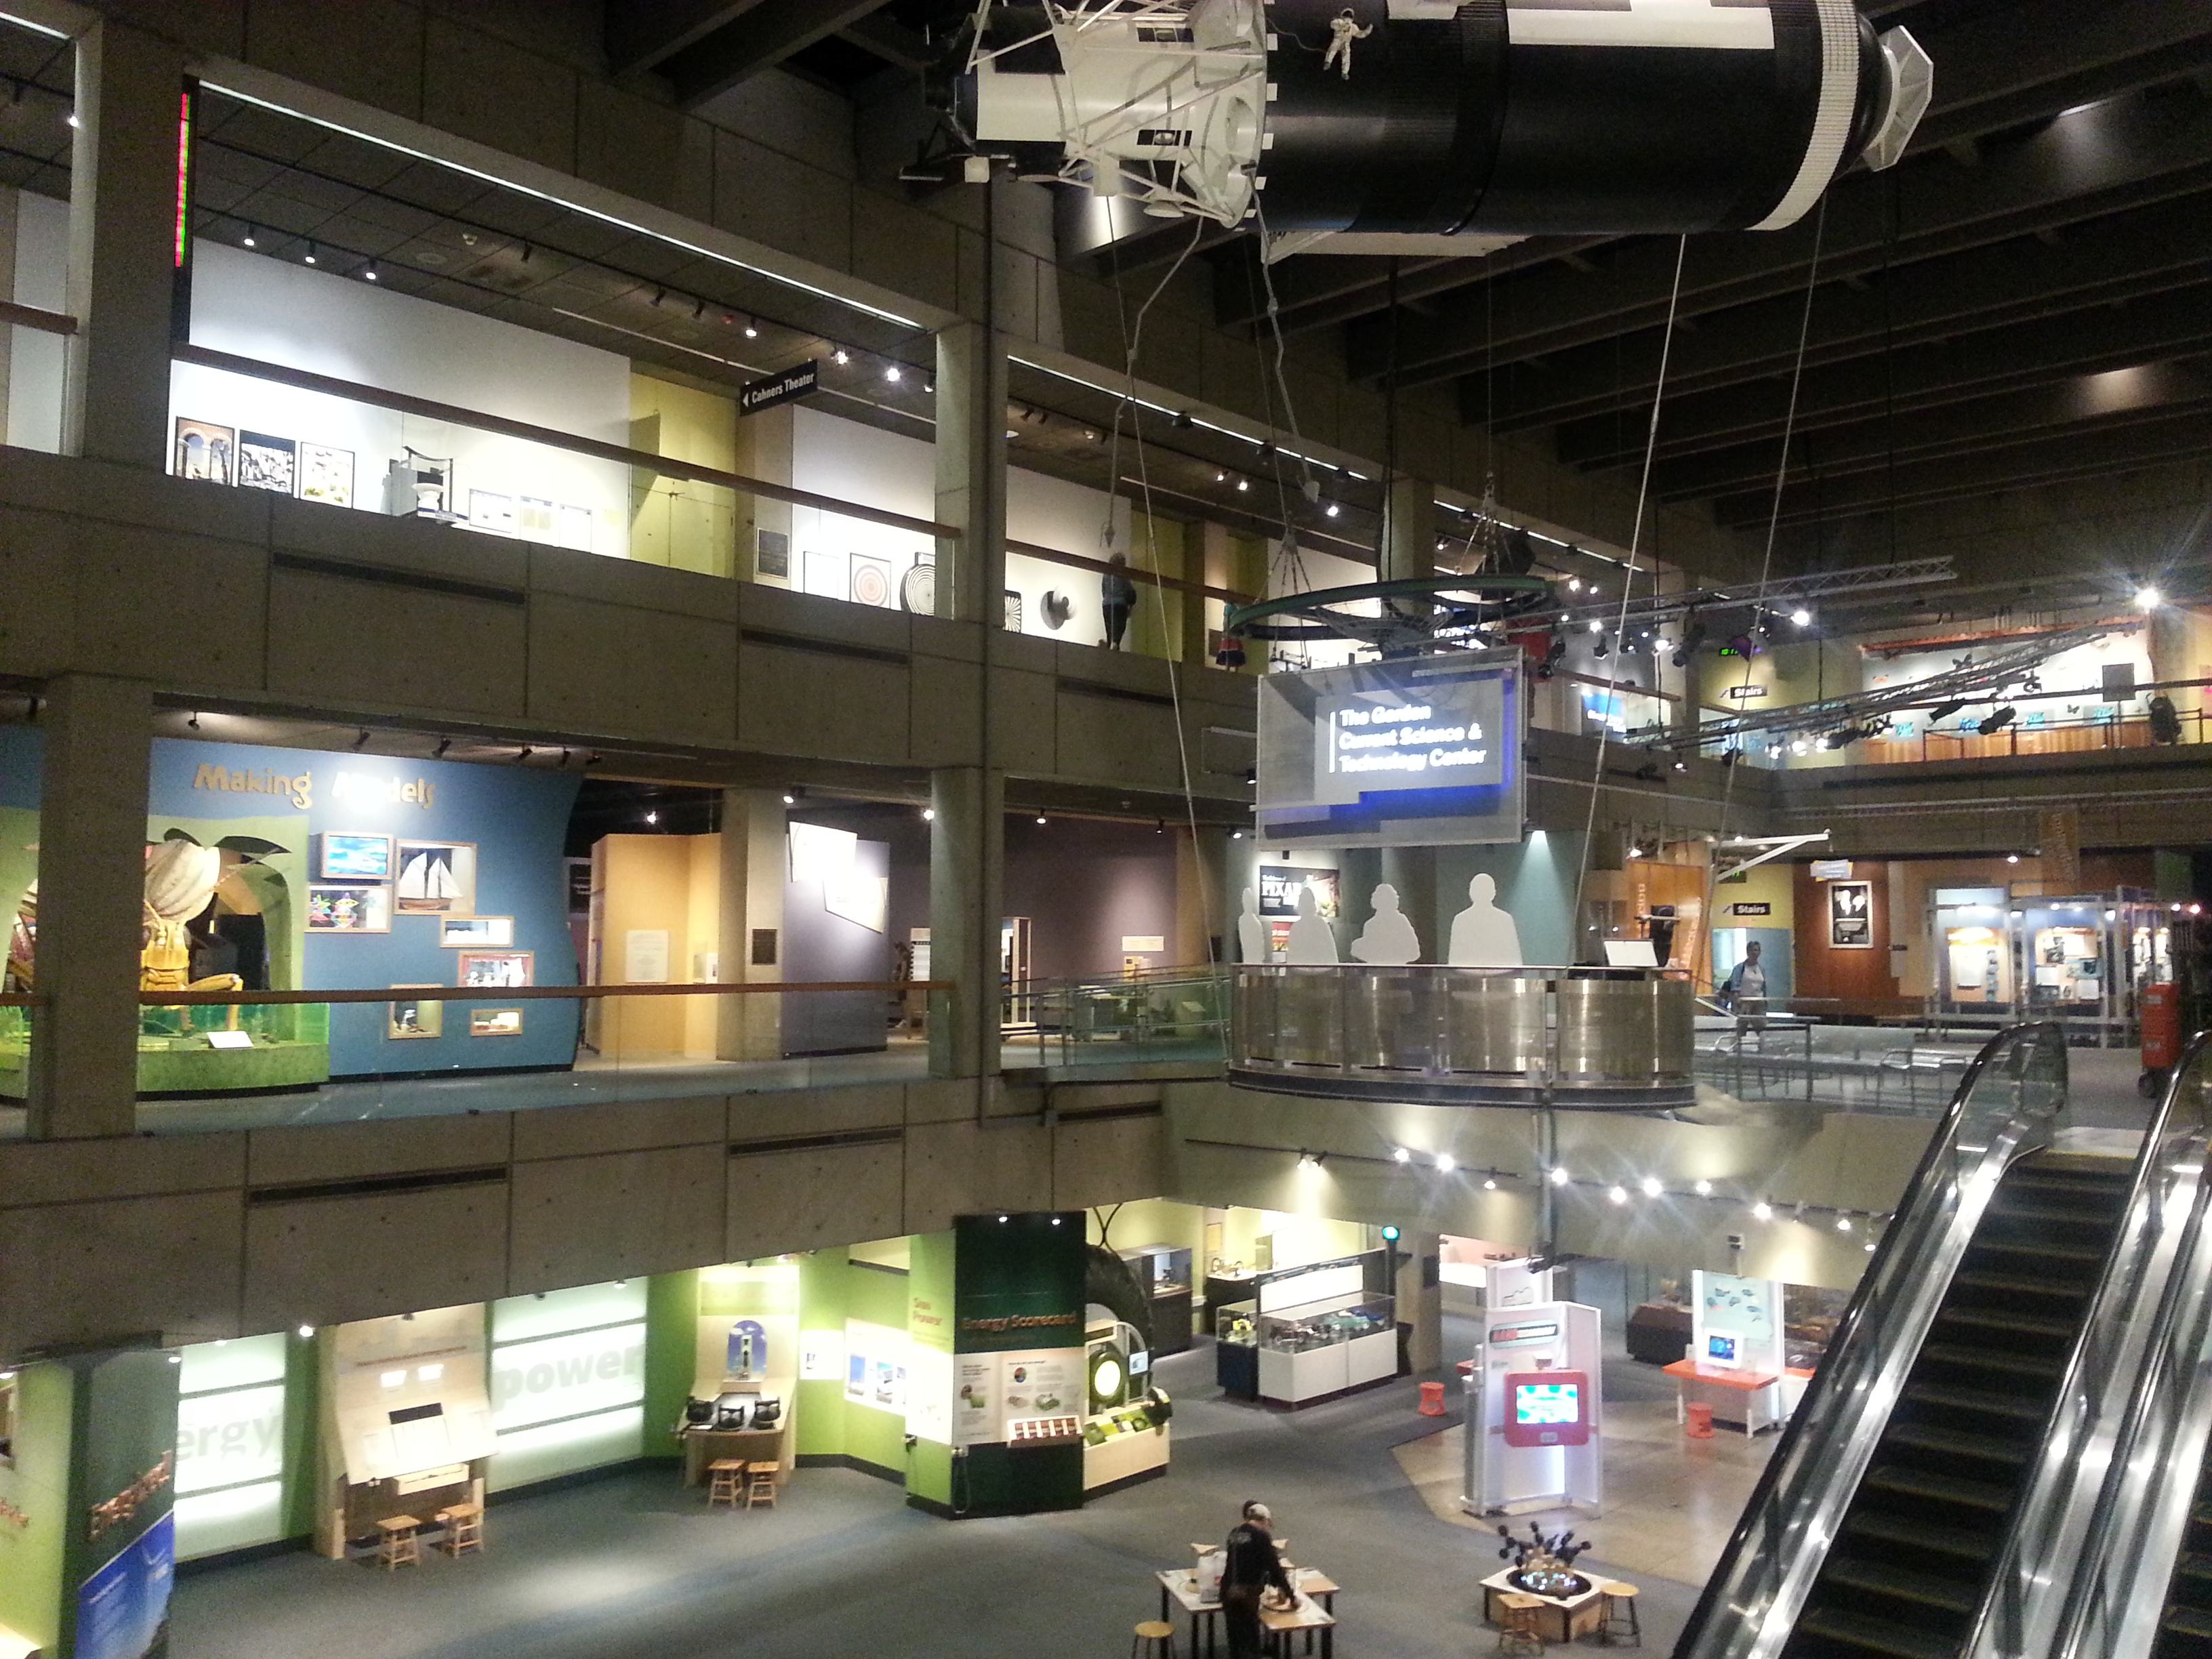 ... access to the Boston Museum of Science. Located only a short bicycle  ride away from MIT, the MoS is also host to the Charles Hayden Planetarium,  ...